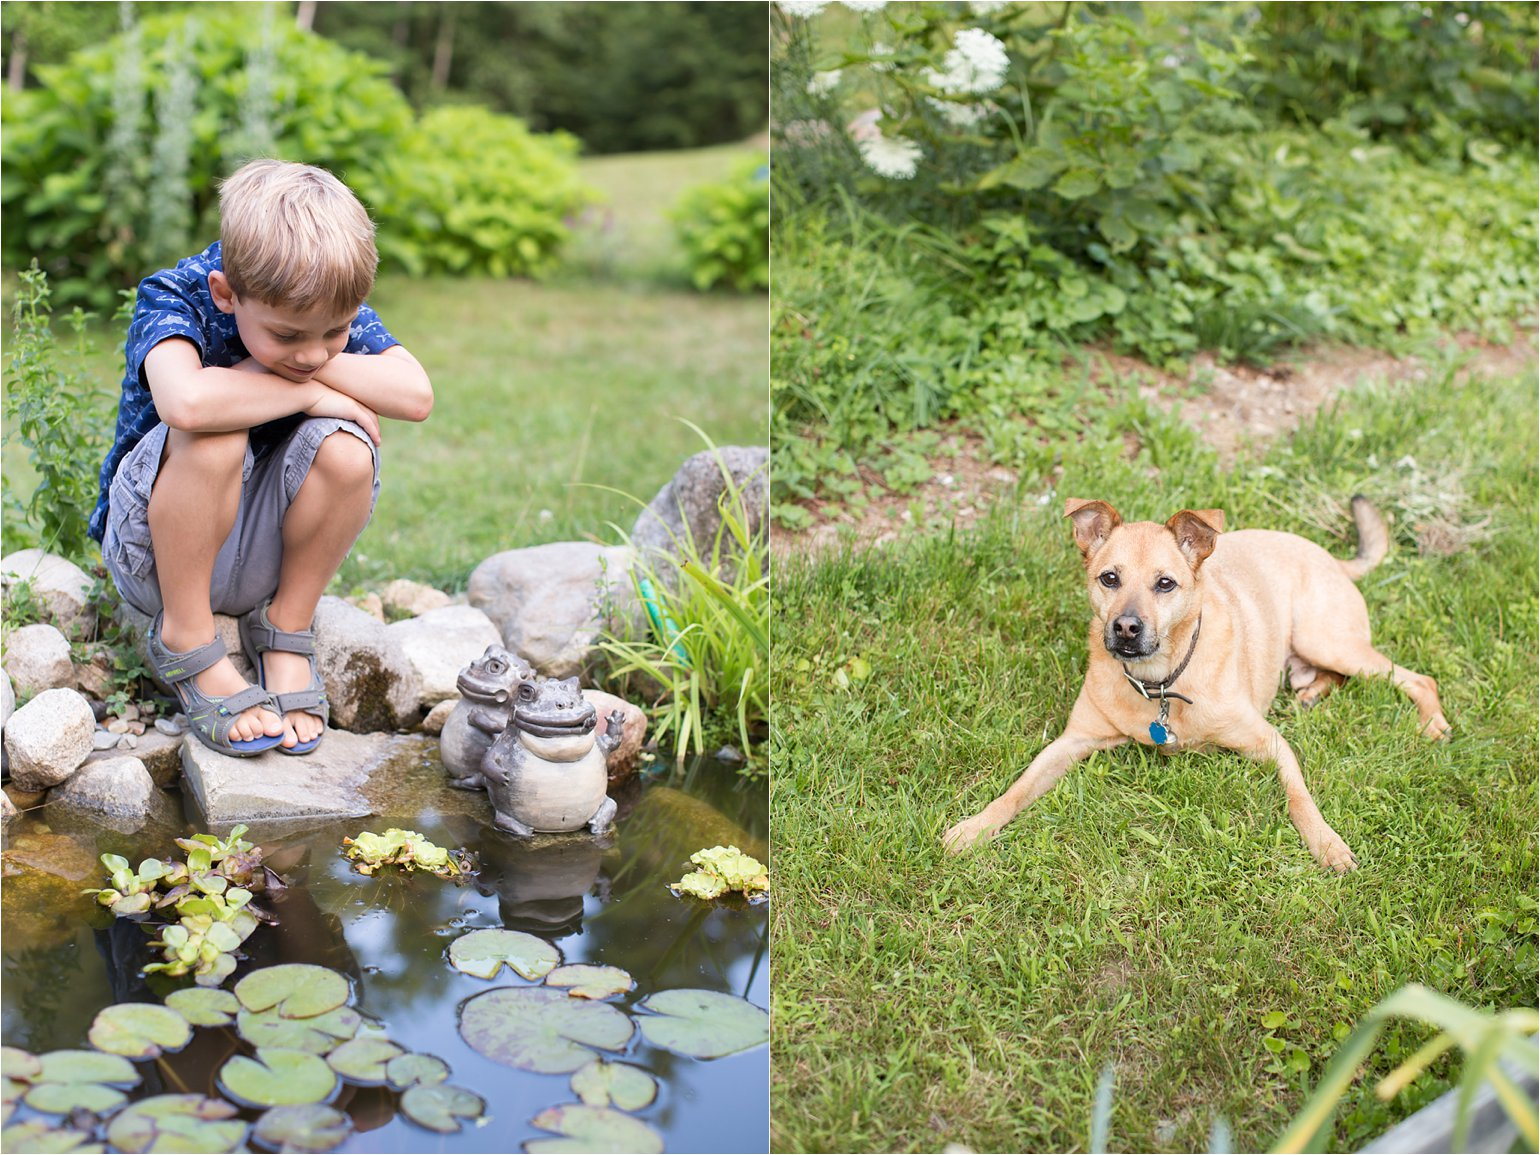 Boy and Dog at Frog Pond © 2015 Maundy Mitchell